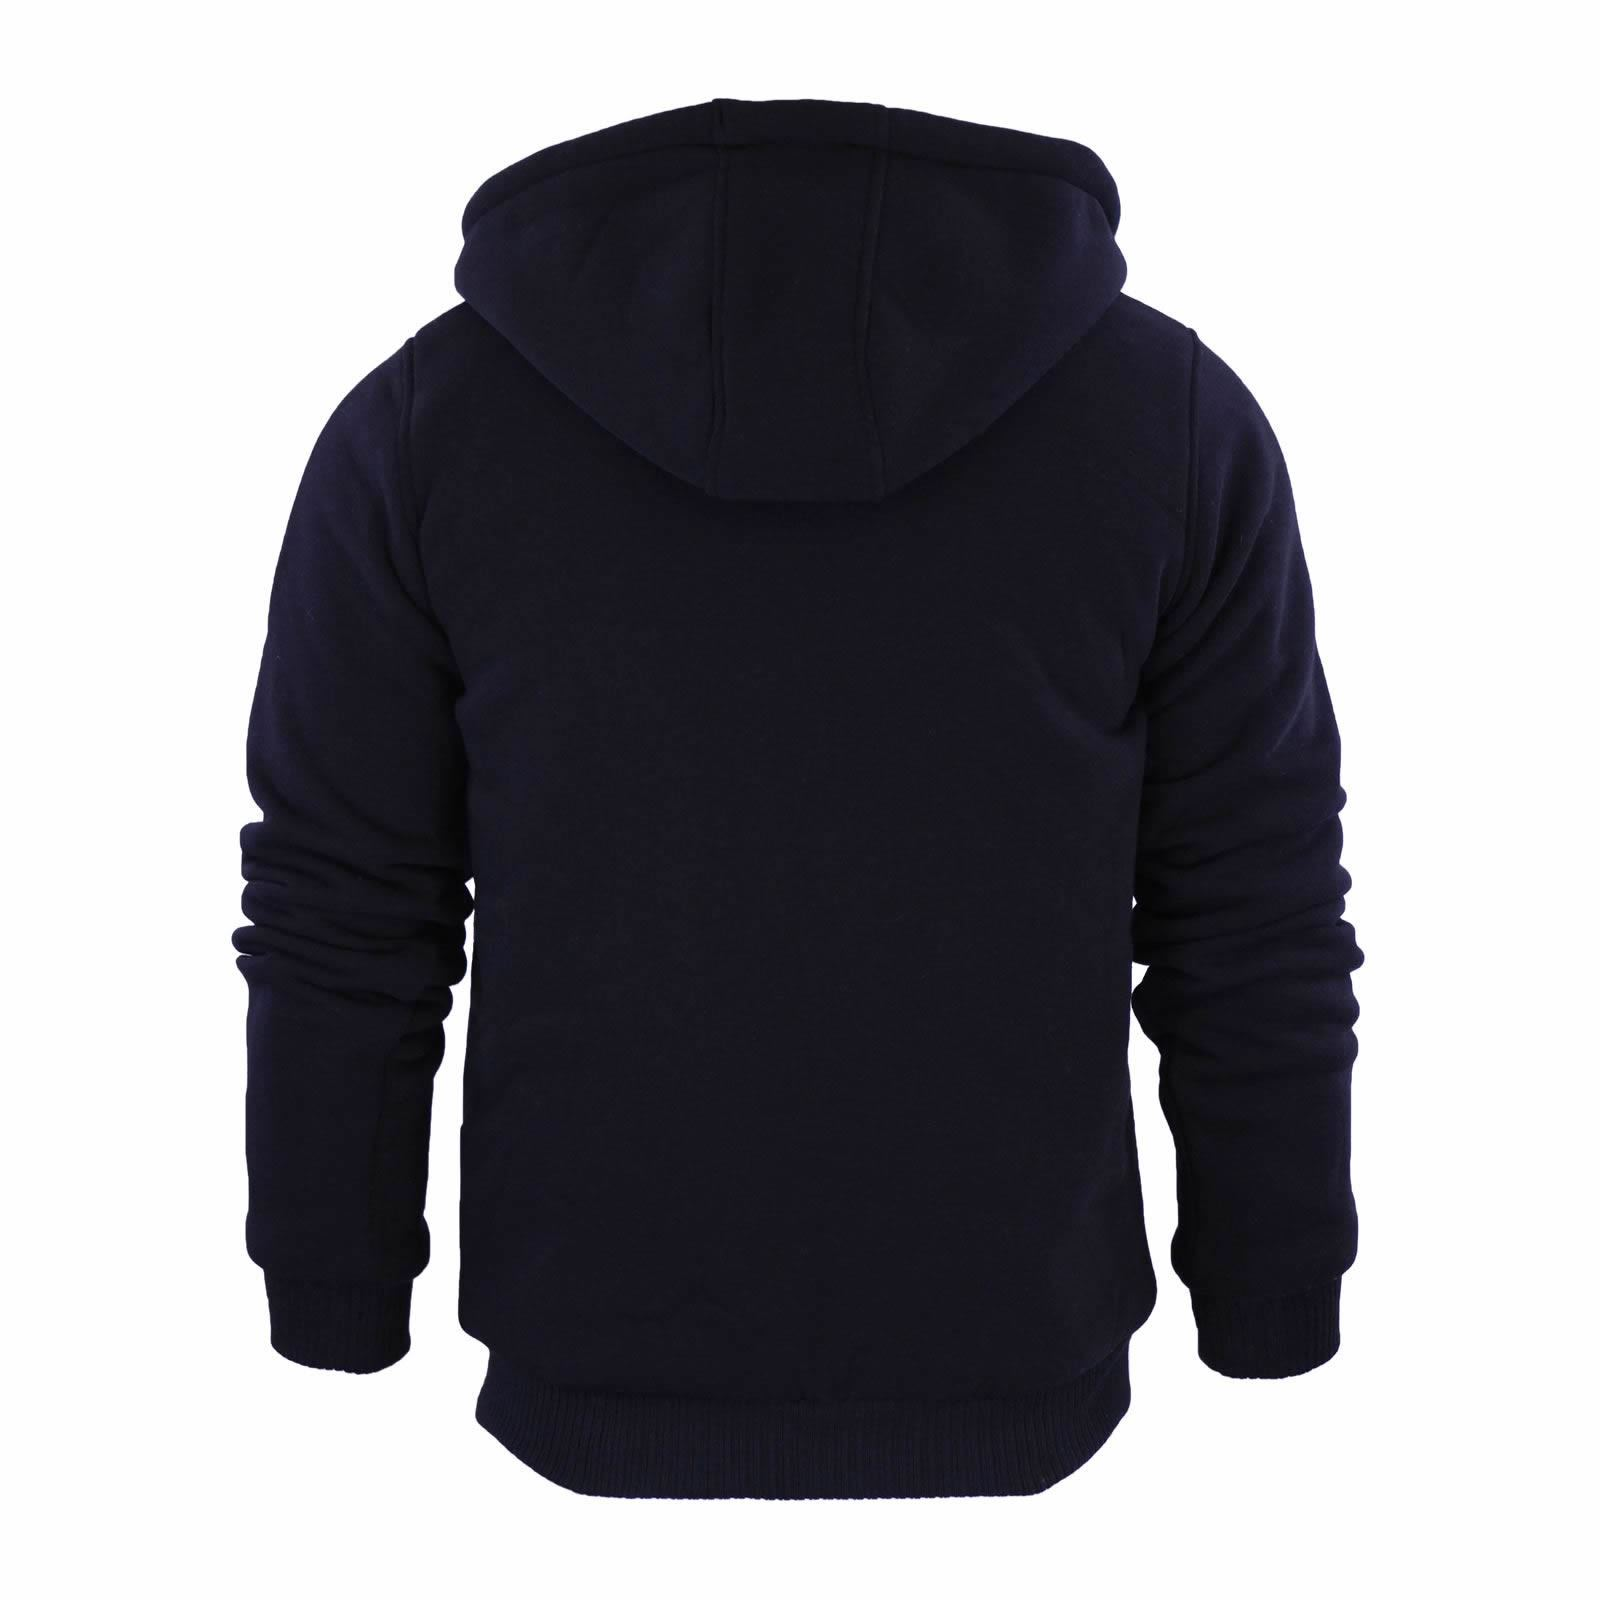 Brave-Soul-Zone-Mens-Hoodie-Sherpa-Fleece-Lined-Zip-Up-Hooded-Sweater thumbnail 3